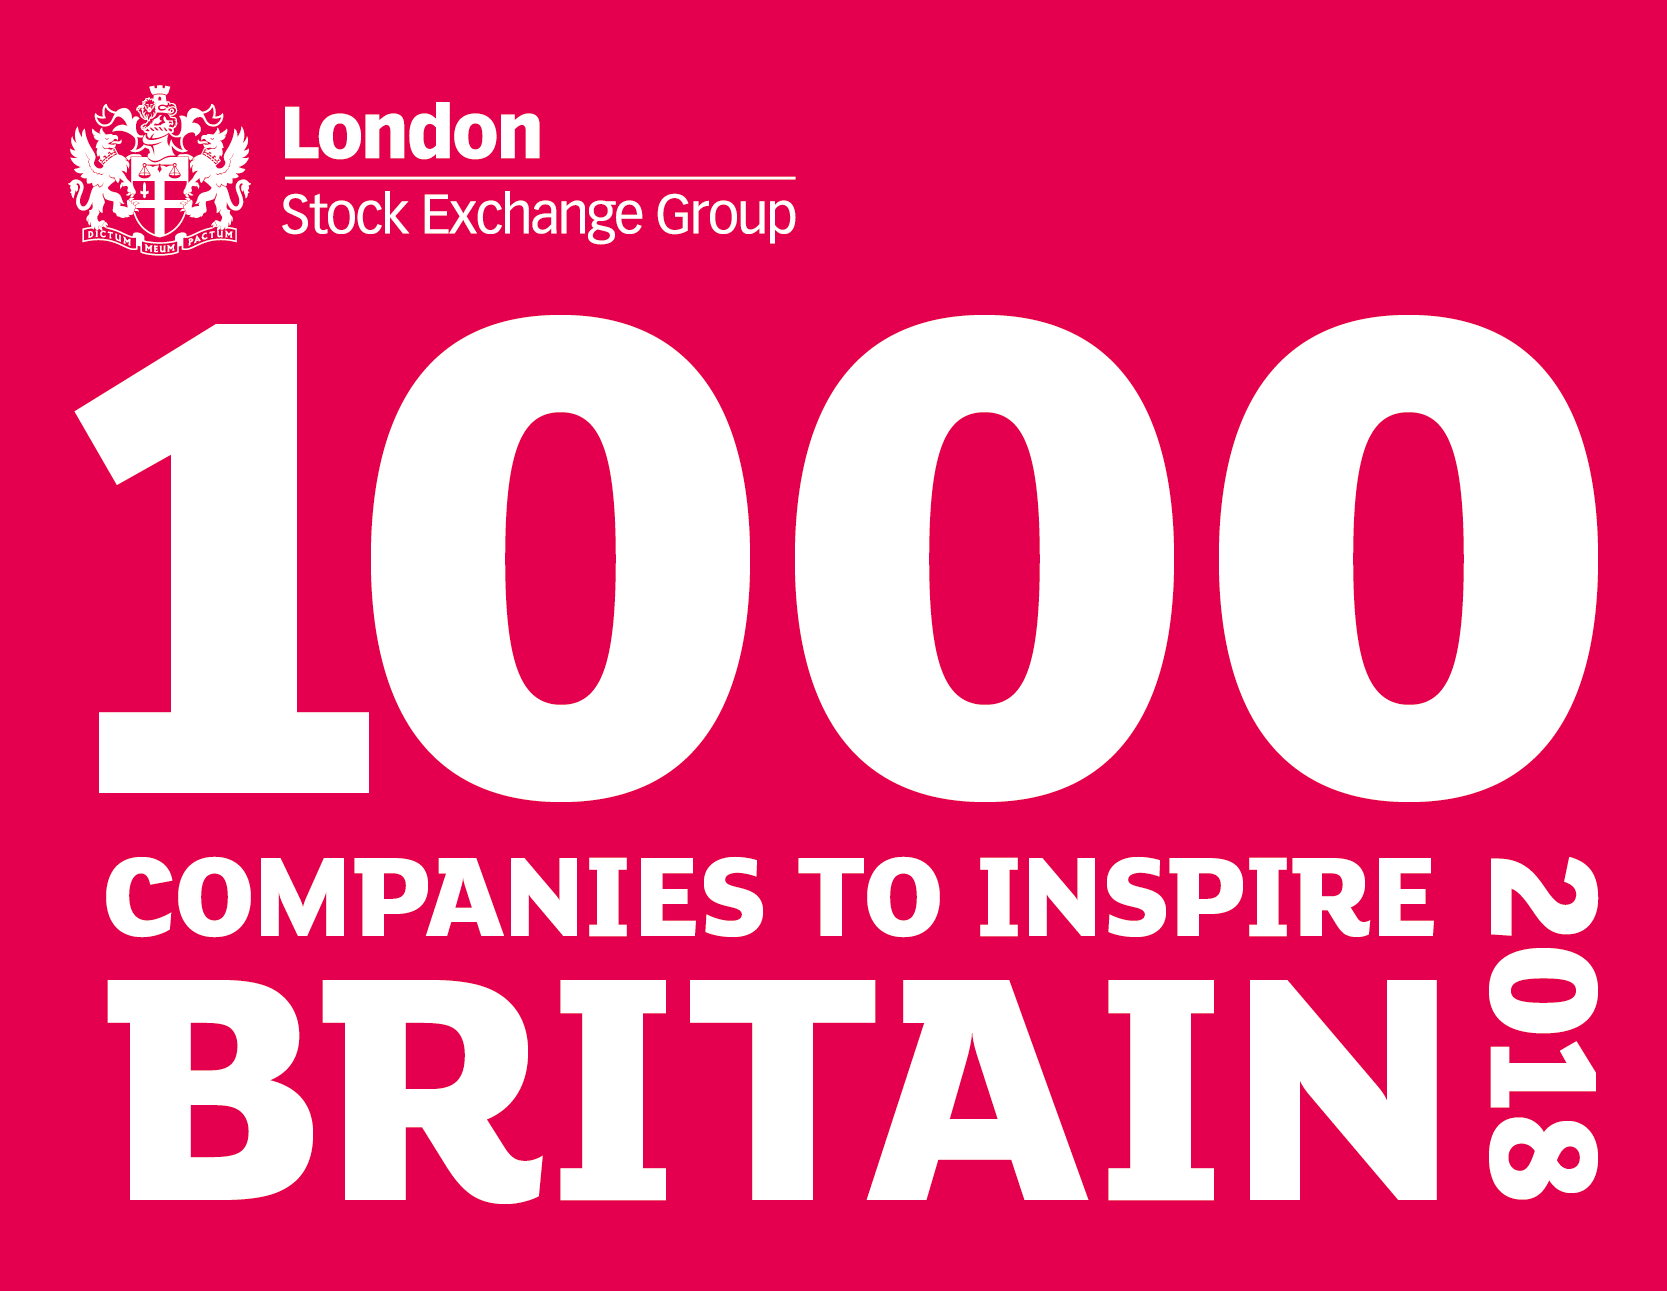 LSE 100 companies to inspire Britain